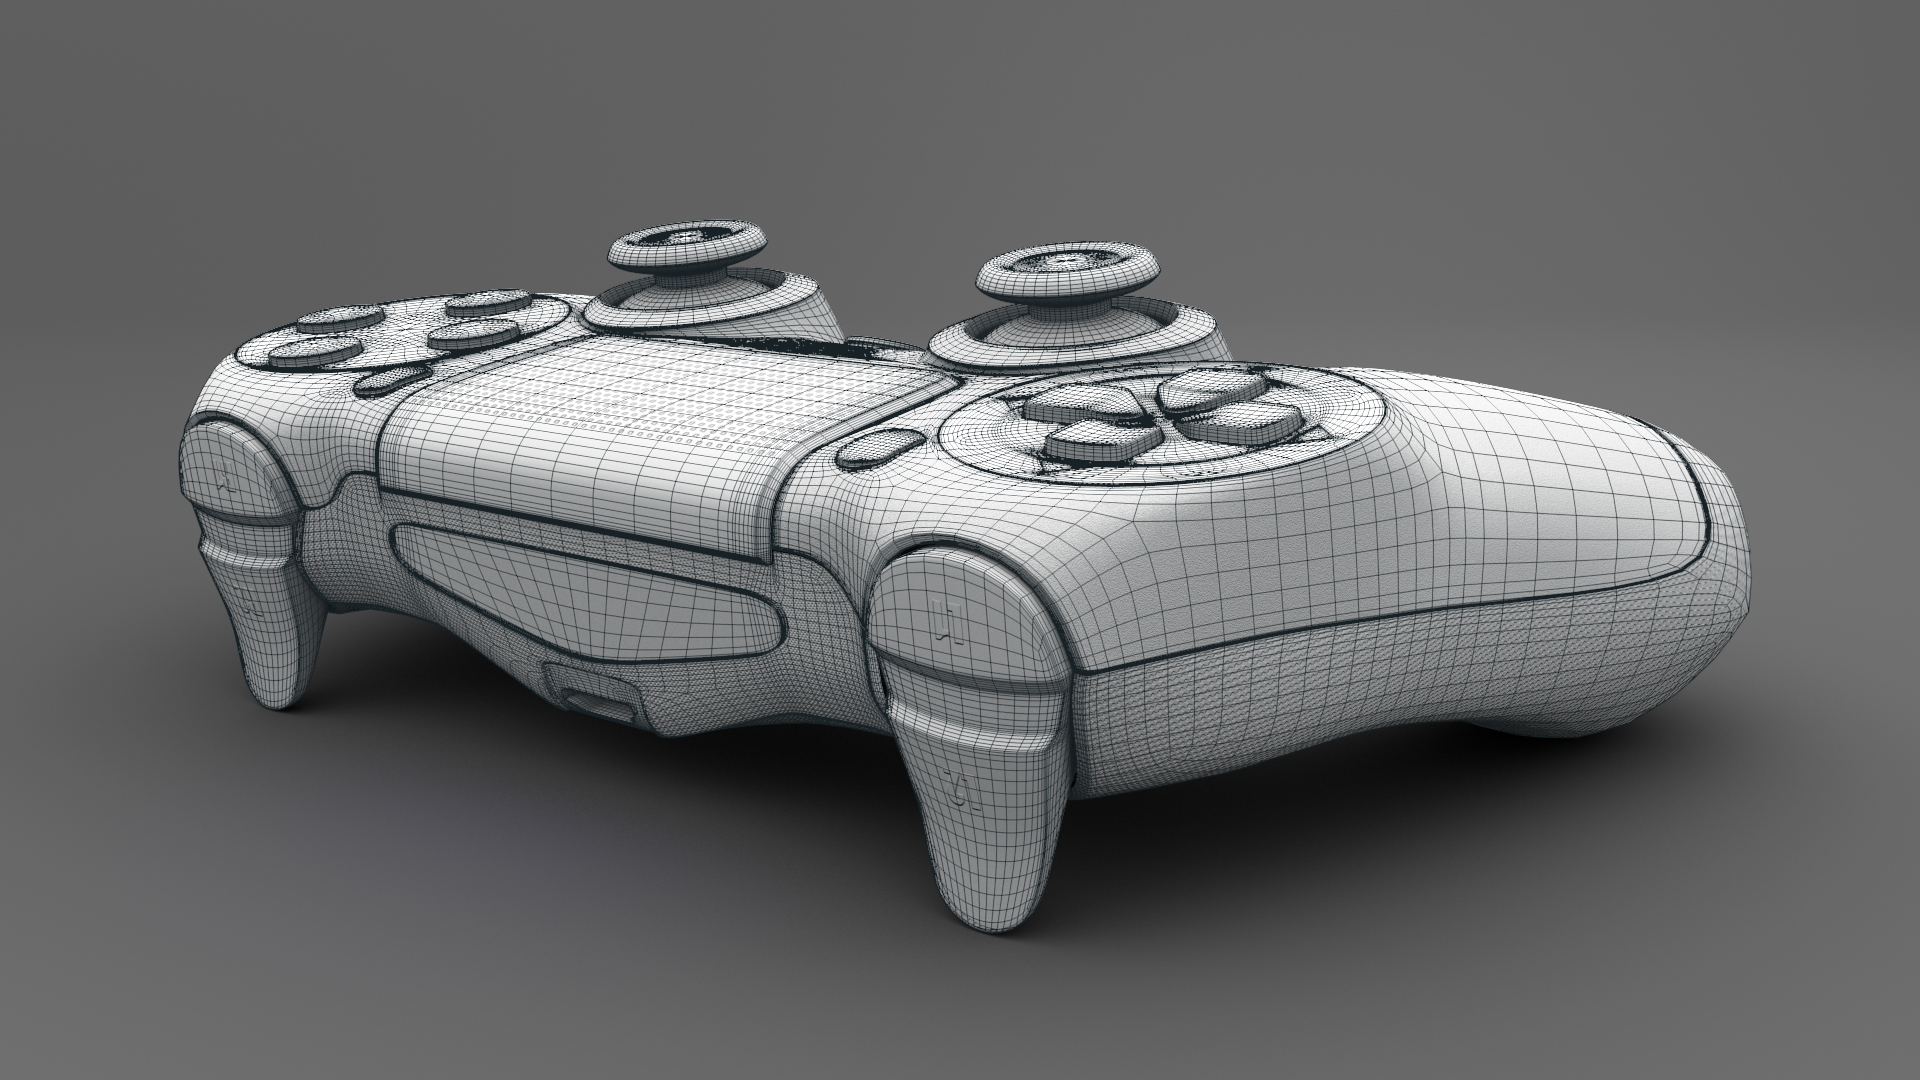 Ps4 controller playstation 4 controller 3d model by for Decor 3d model